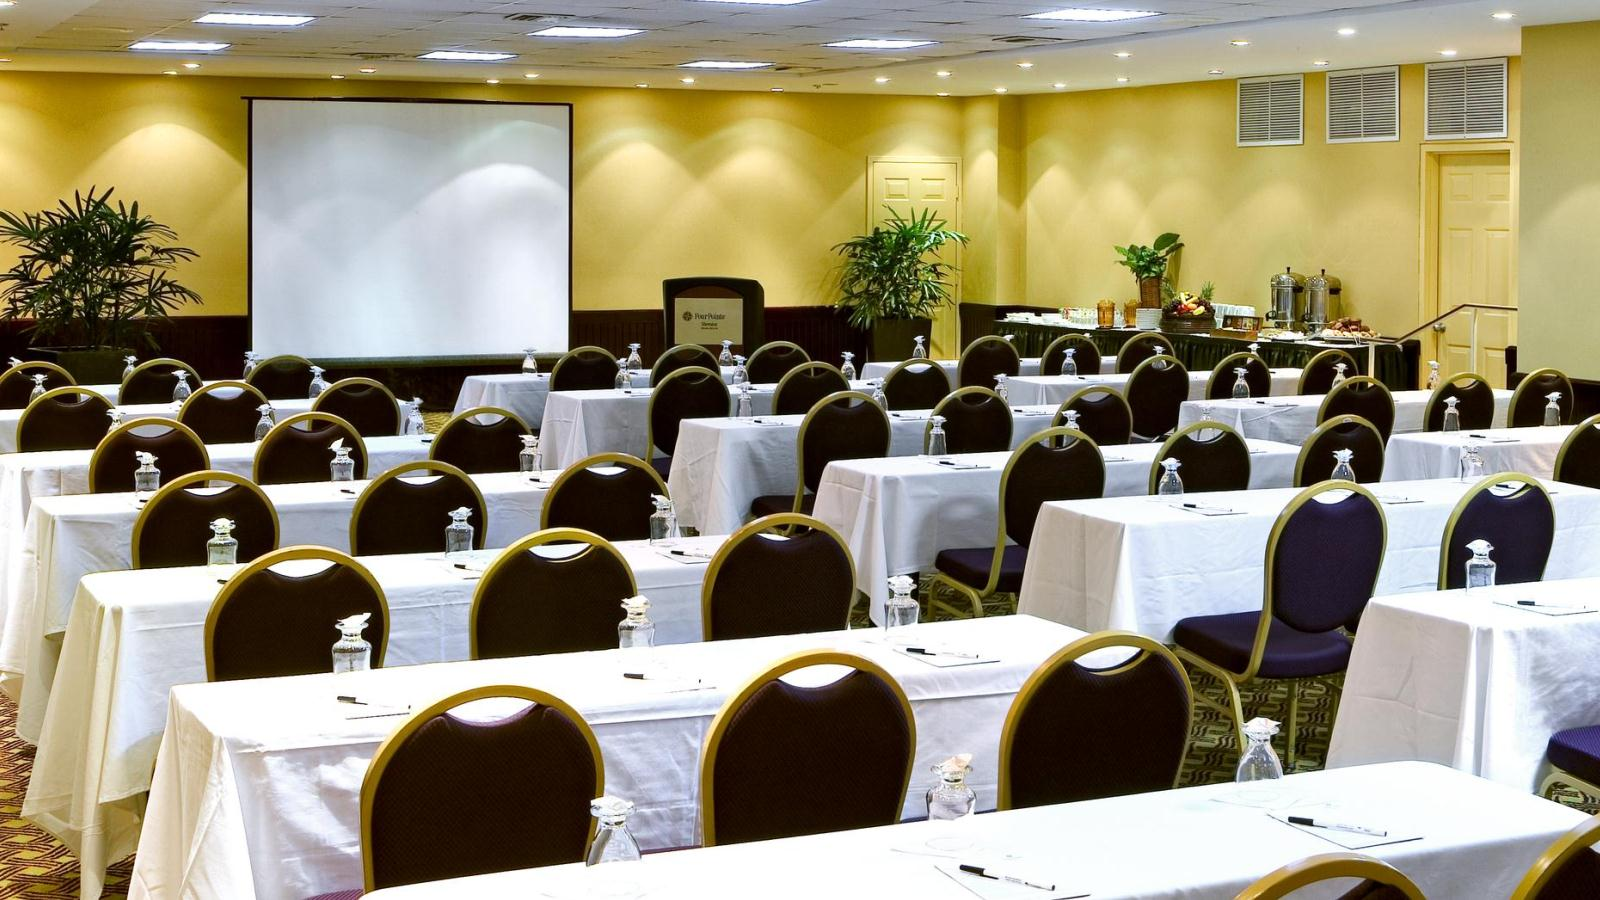 Miami Beach Meeting Rooms - Classroom Setup